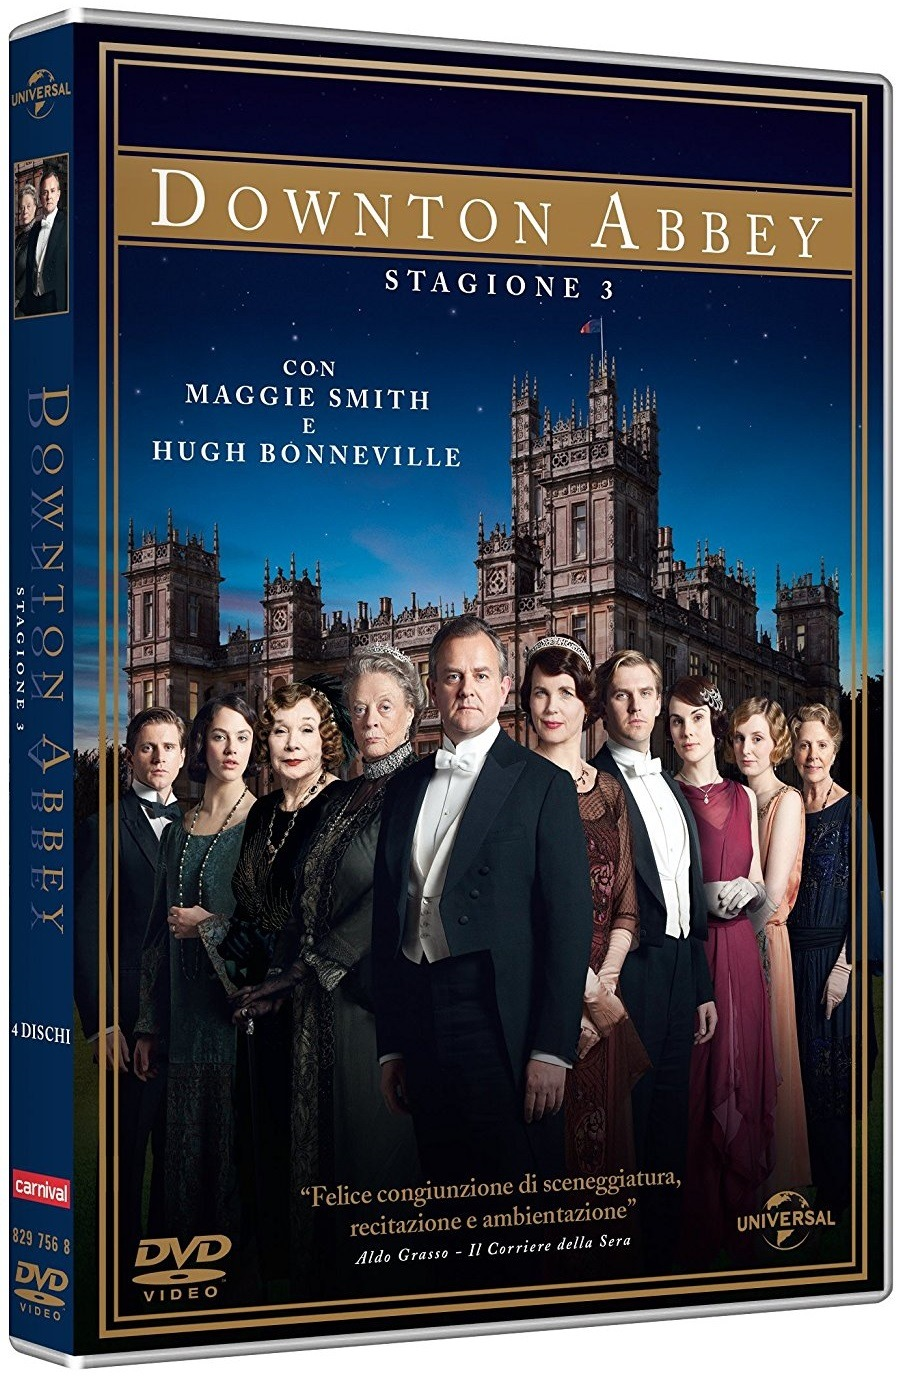 Downton Abbey - Stagione 03 - Movie - Film - Universal Pictures - 5050582975680 -